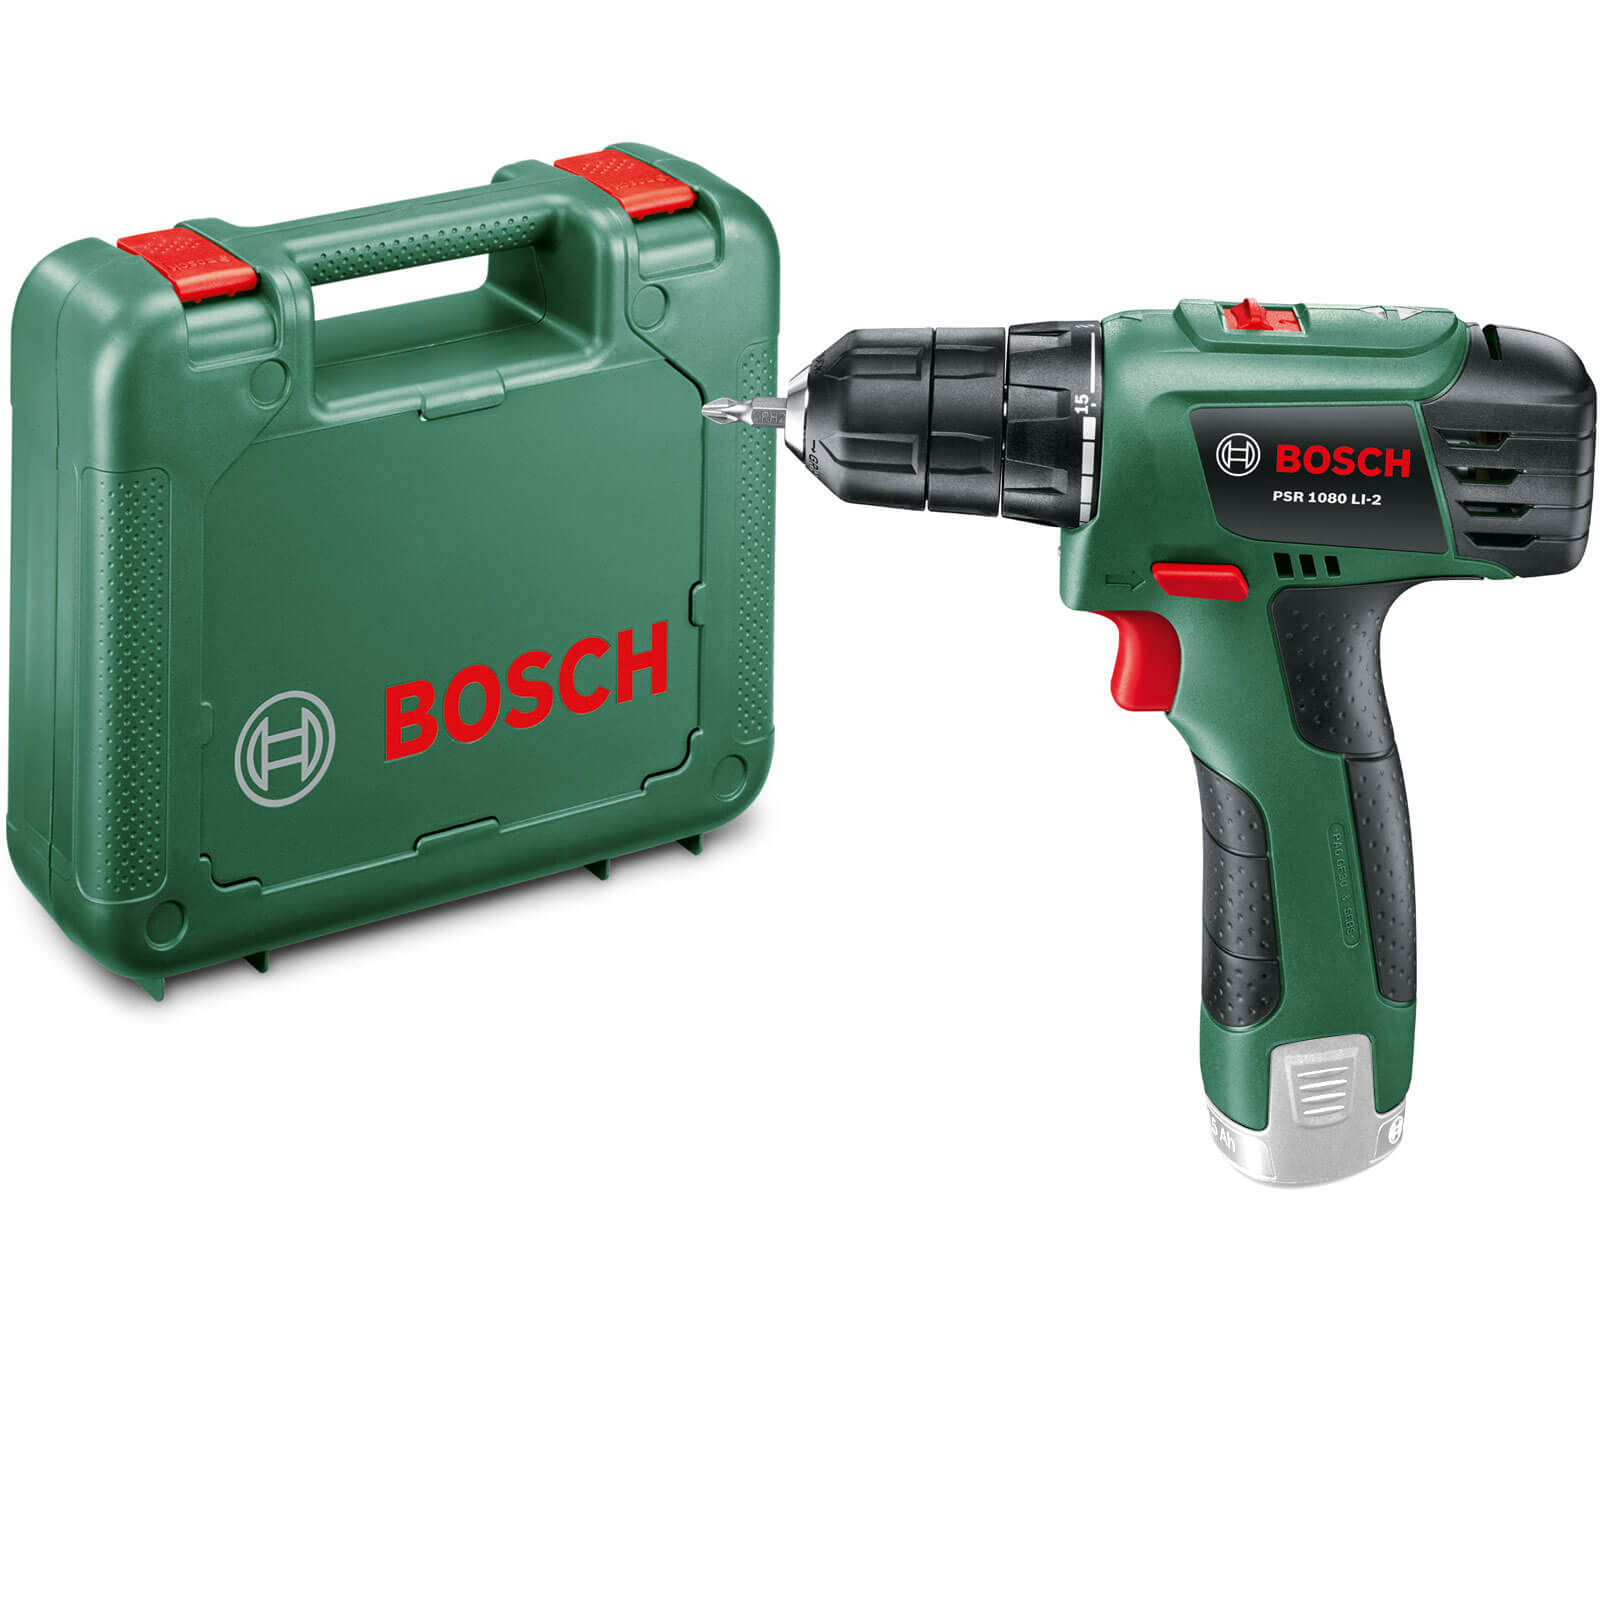 zzz bosch psr 1080 li cordless drill driver without battery or charger. Black Bedroom Furniture Sets. Home Design Ideas